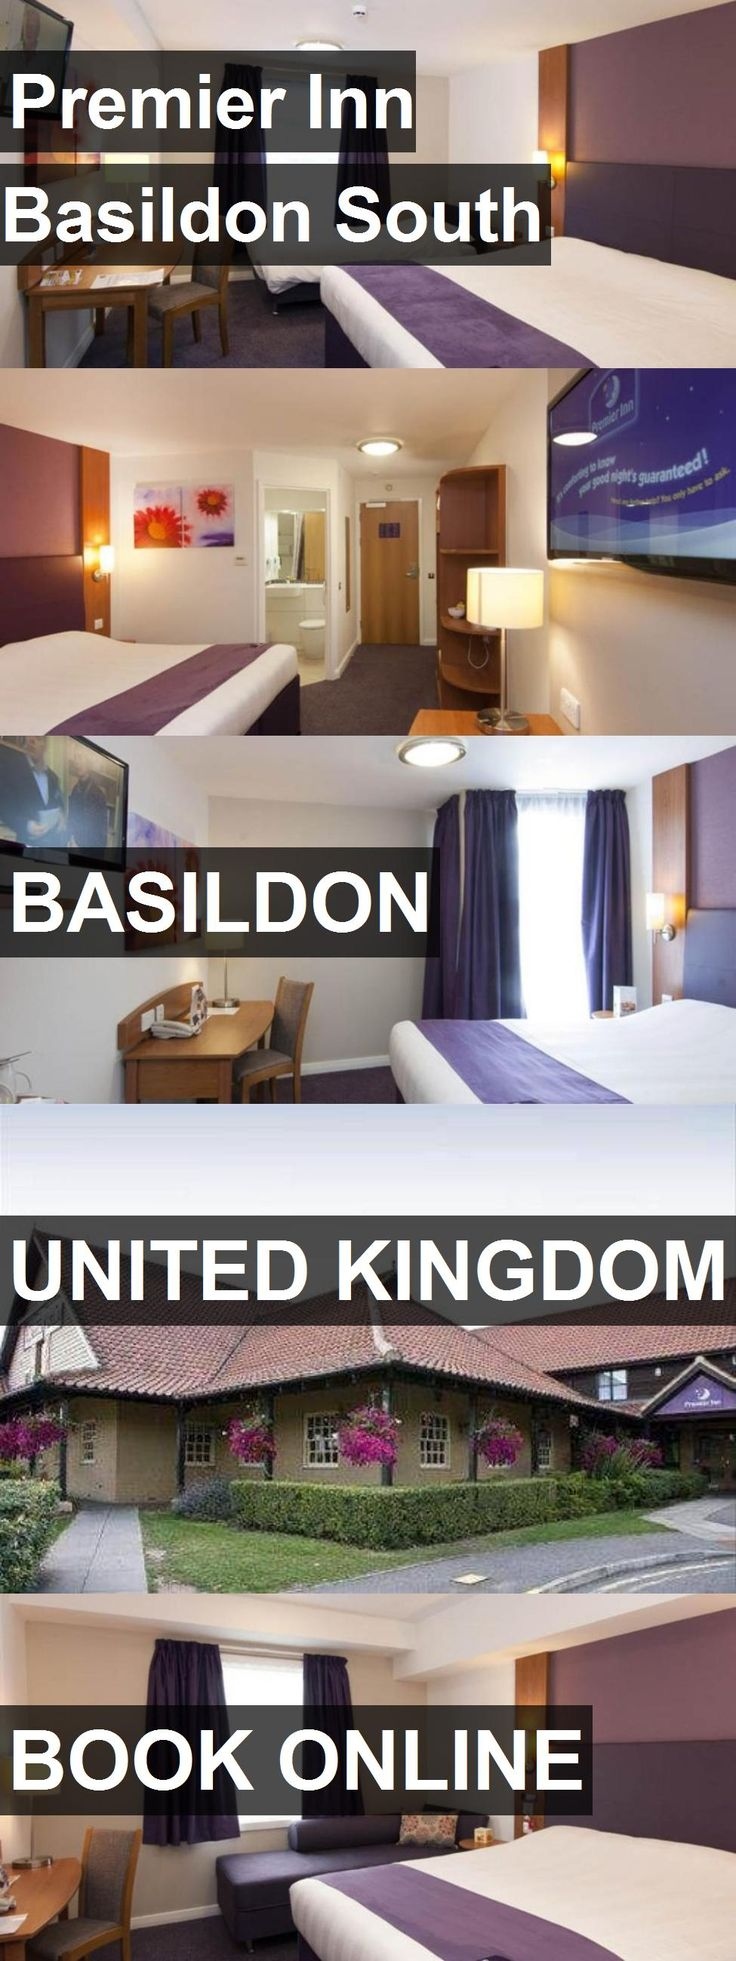 Hotel Premier Inn Basildon South in BASILDON, United Kingdom. For more information, photos, reviews and best prices please follow the link. #UnitedKingdom #BASILDON #travel #vacation #hotel